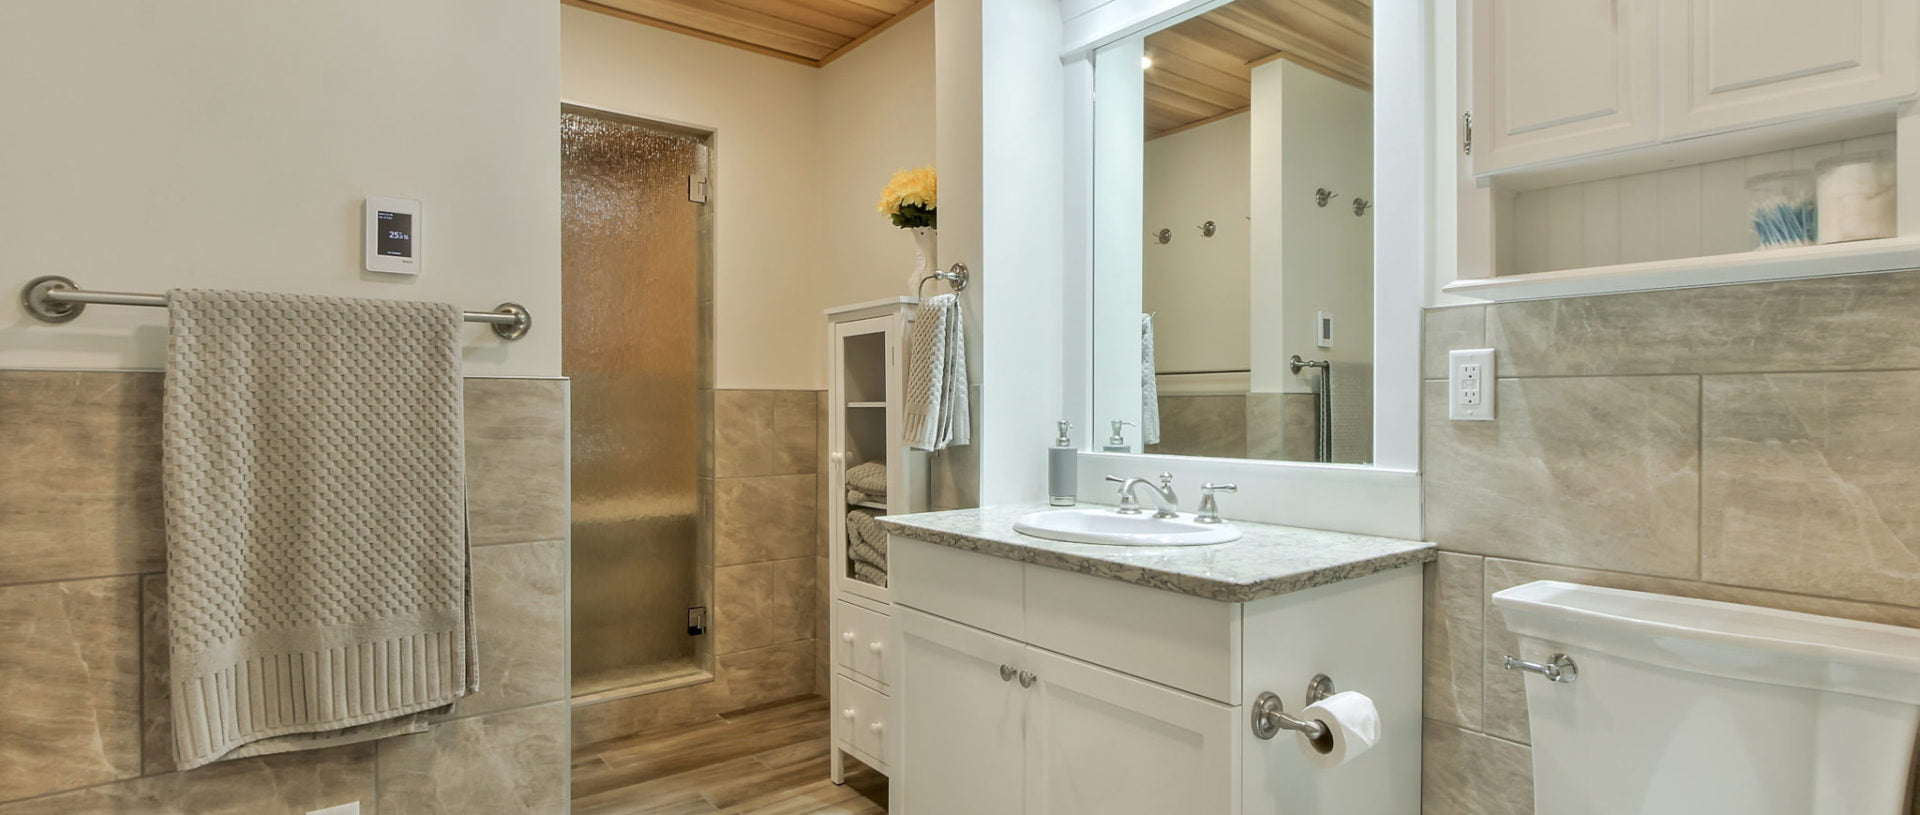 Custom Edmonton bathroom with built-in sauna